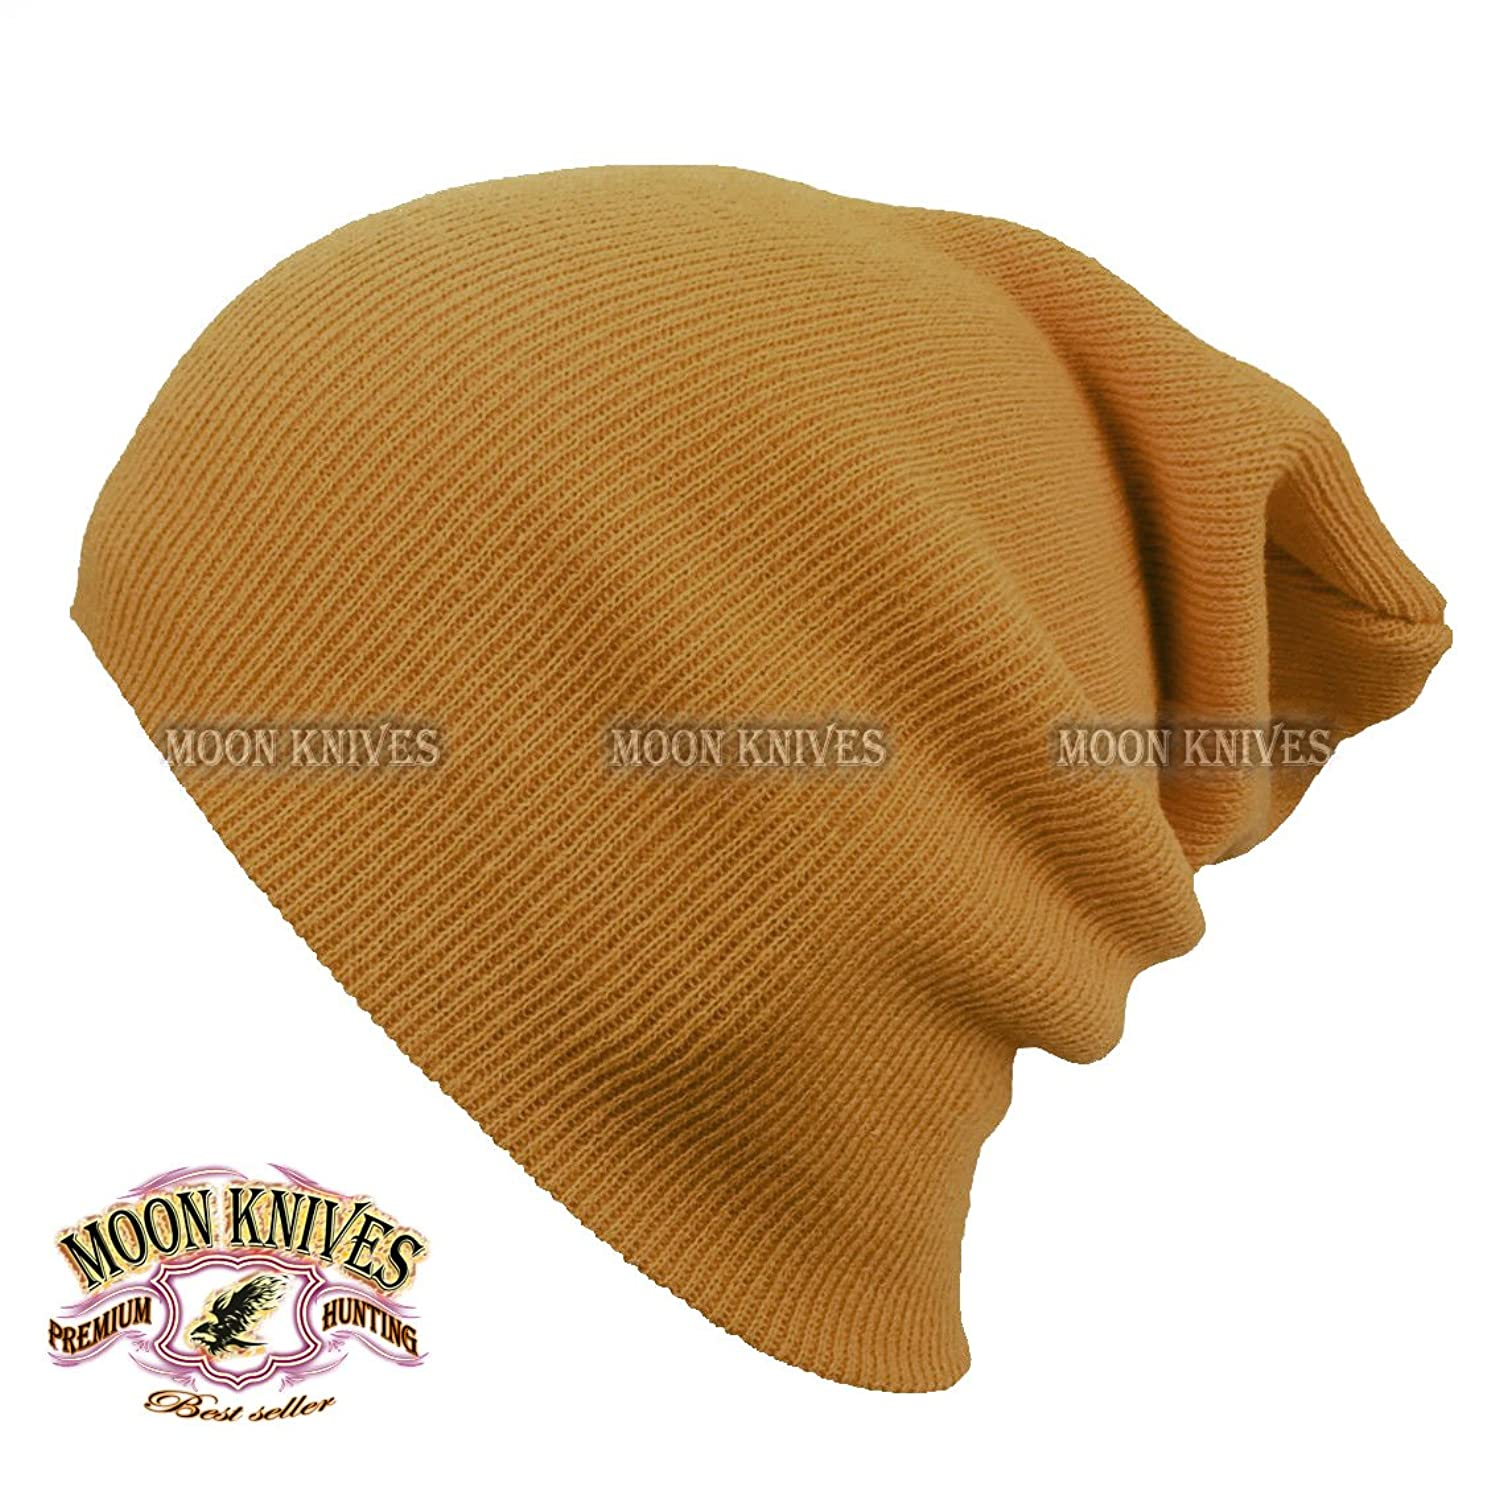 7ca92fecb31ec1 Cuff Beanie Knit Hat Winter Warm Cap Slouchy Skull Ski Hats Men Women Warm  Plain TAN by MOON KNIVES